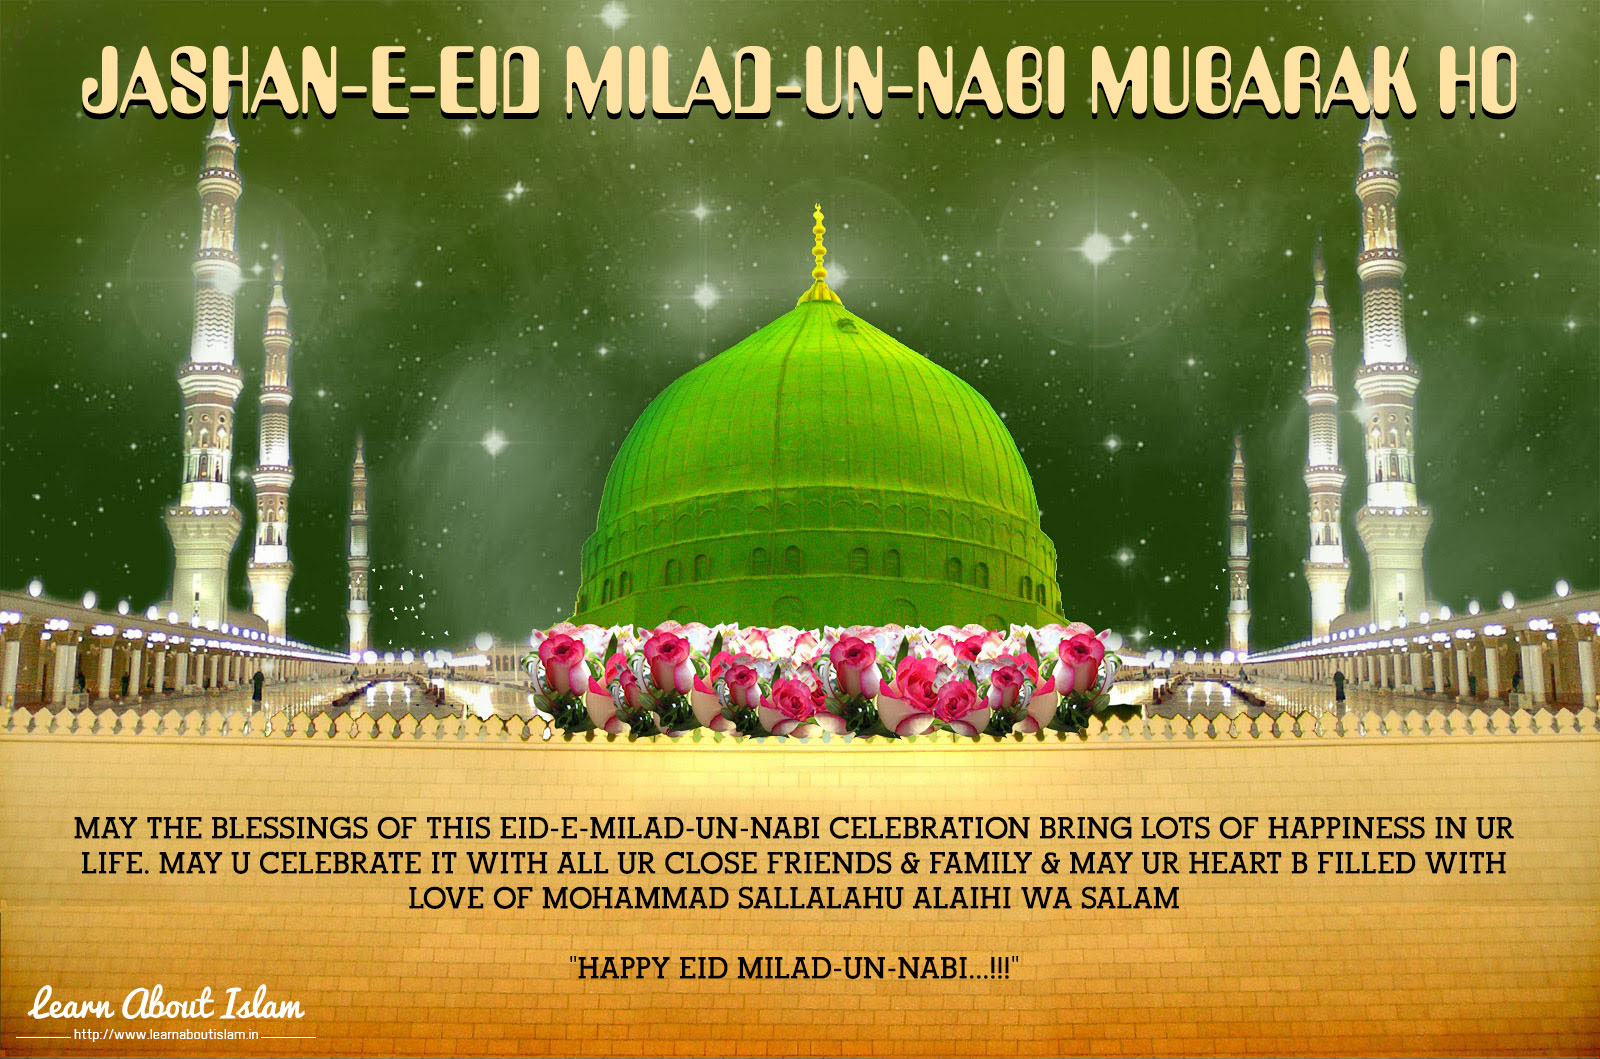 Eid Milad Un Nabi Mubarak Greetings Messages Wishes Learn About